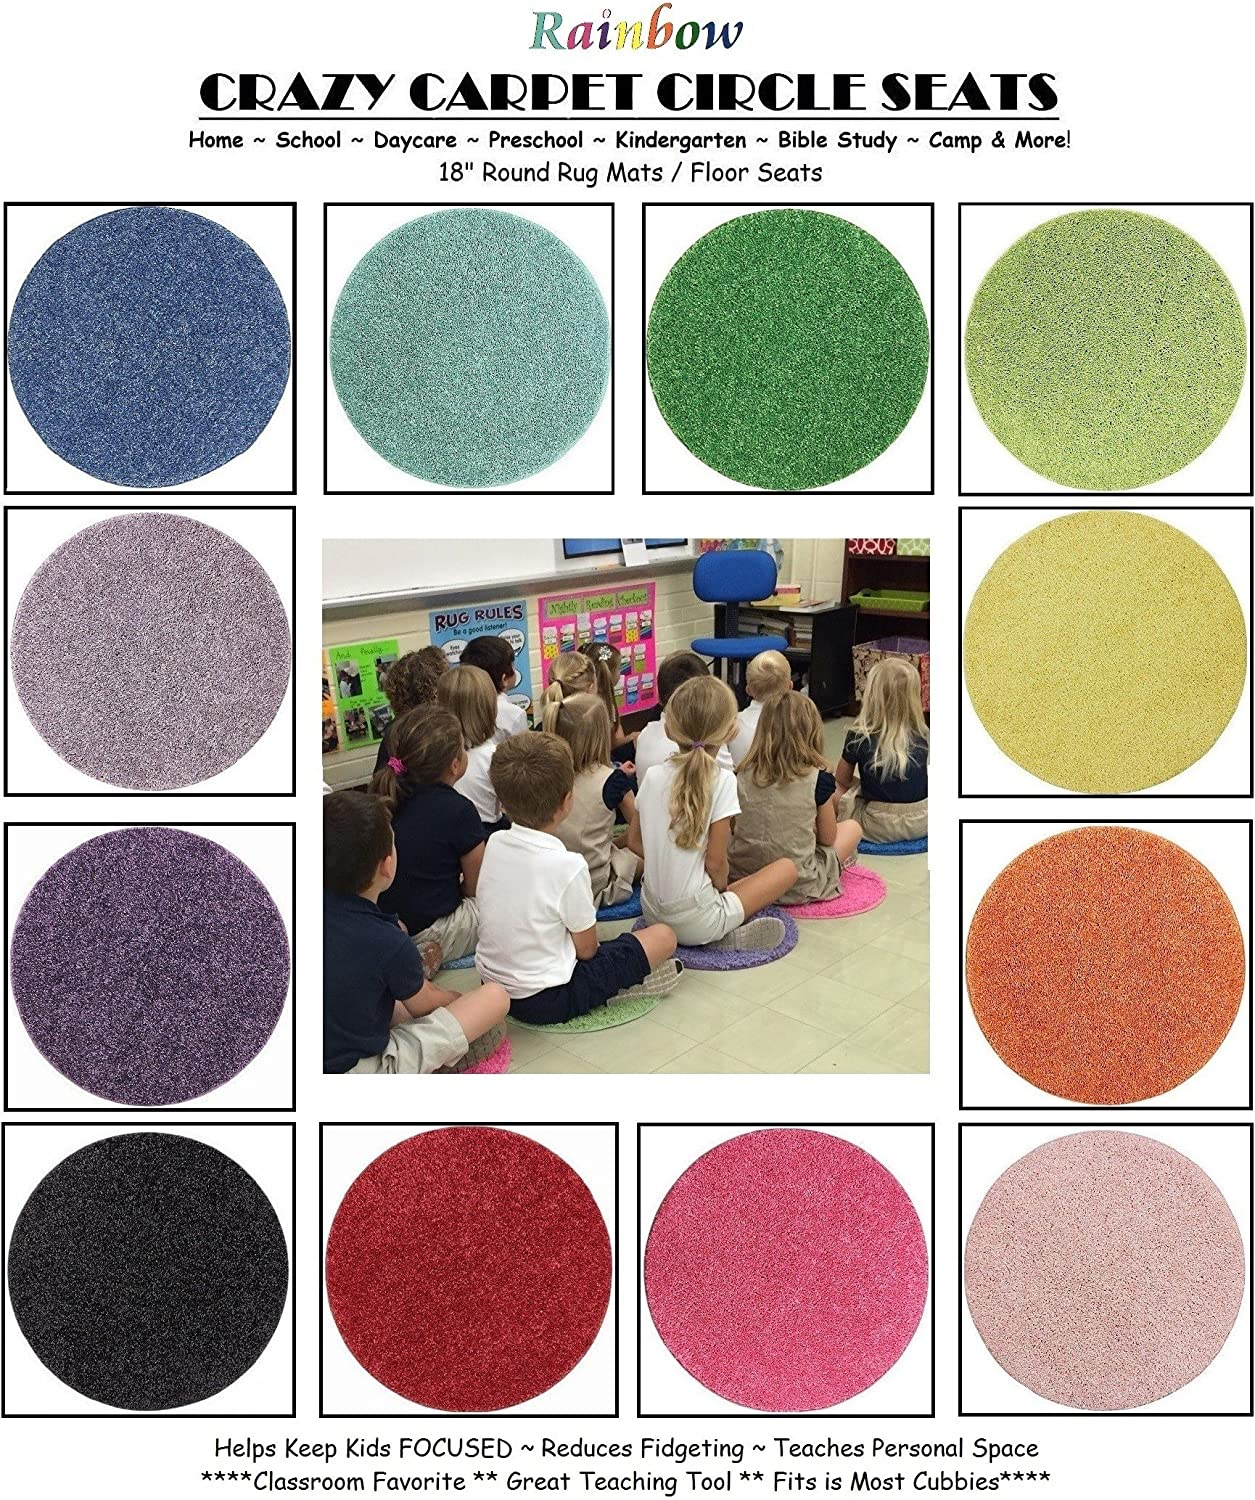 24 Rainbow Kids Crazy Carpet Circle Seats 18 Round Soft Warm Floor Mat - Cushions | Classroom, Story Time, Group Activity, Time-Out Spot Marker and Fun. Home Bedroom & Play Areas A15eWlhvChLSL1500_